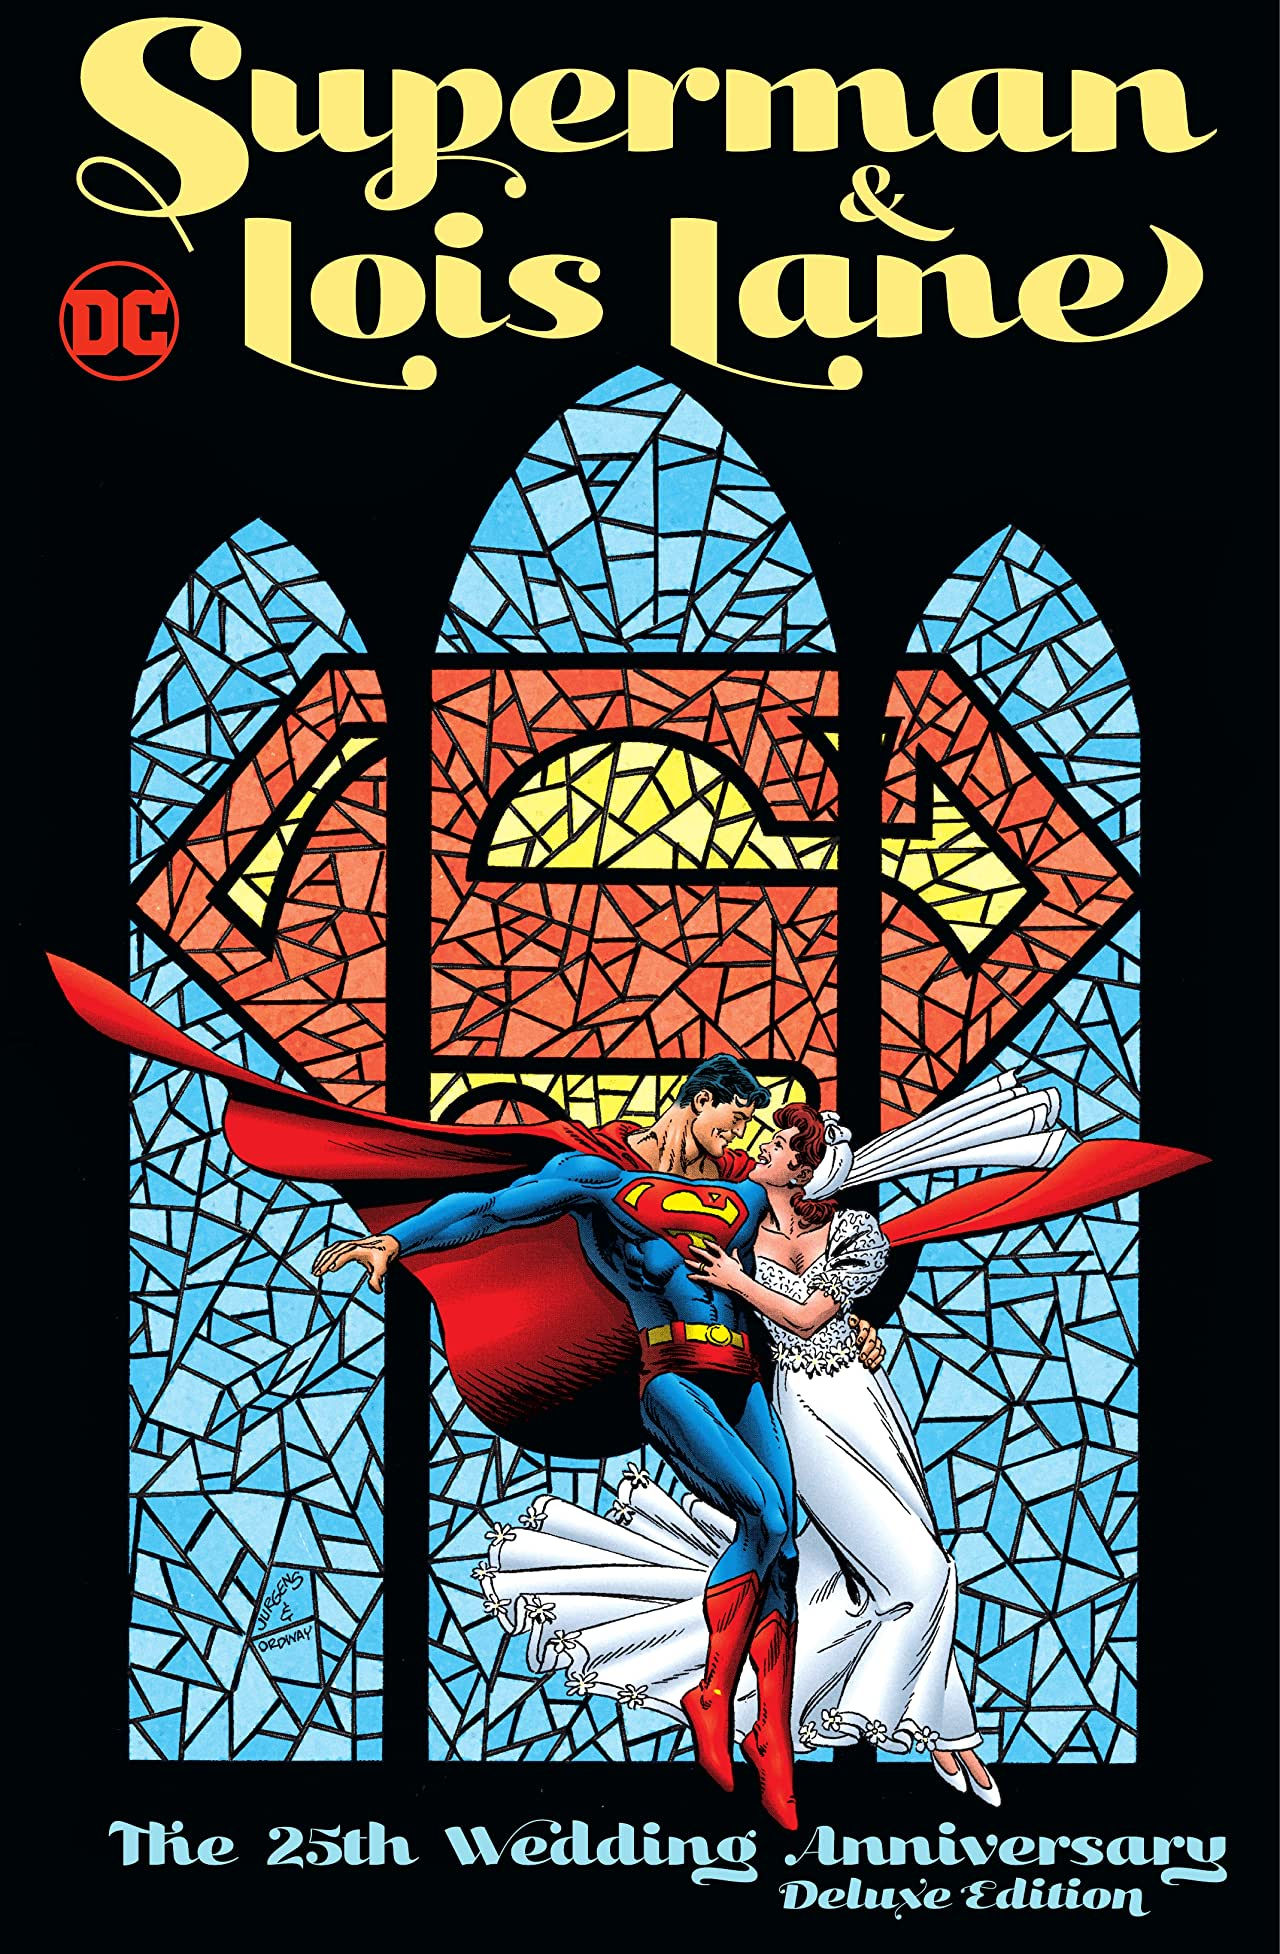 Superman & Lois Lane: The 25th Wedding Anniversary Deluxe Edition